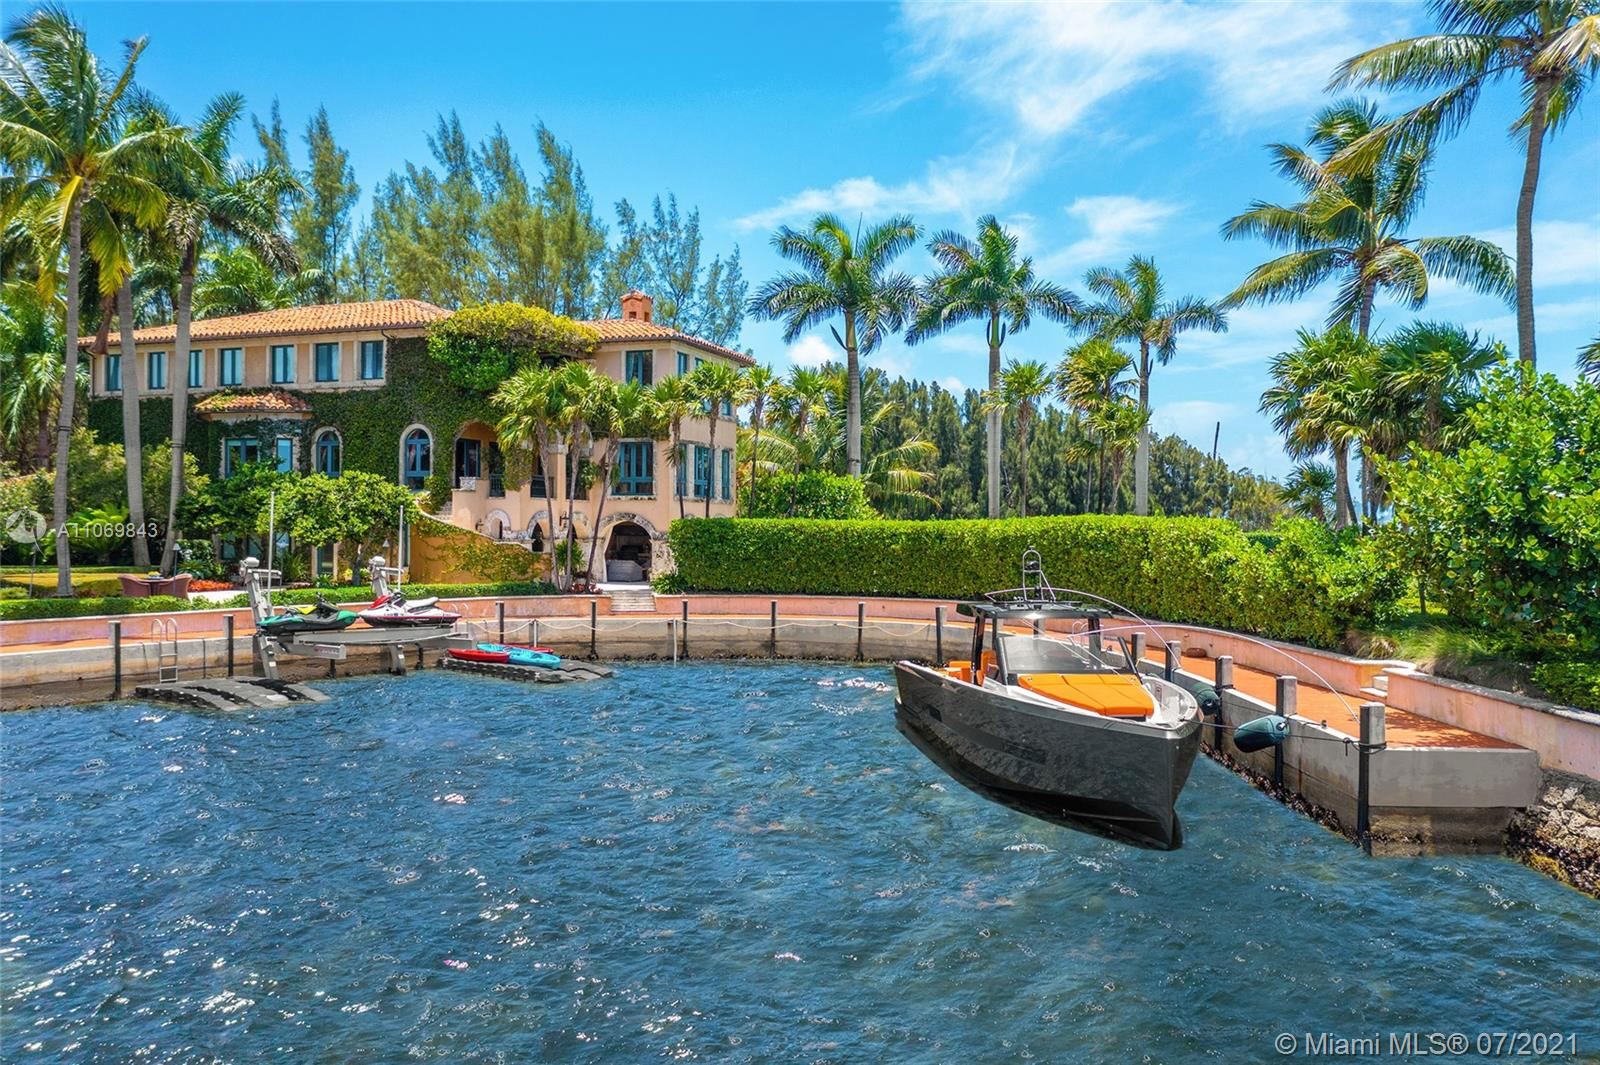 Welcome to Villa Cristina, world class waterfront estate delivers utmost privacy w/ approx. 1 acre of surrounding beauty & 482' of WF that both awes & inspires. Enter through a private, cul de sac gated entrance framed by arching trees concealing a private sculpture garden & grounds that will take your breath away. Tucked within the prestigious guard-gated enclave of Hughes Cove, this compound exudes seclusion, sophistication & elegance. Encompassing 3 stories, the estate features views from every room, elevator, formal dining room, service quarters, gym, gourmet kitchen & office. Outdoors an infinity pool neighbors a magical pathway leading to a spa, private lounge overlooking the endless ocean vistas & a private cove w/ a dock. This Venetian style palazzo estate is in a class of its own.